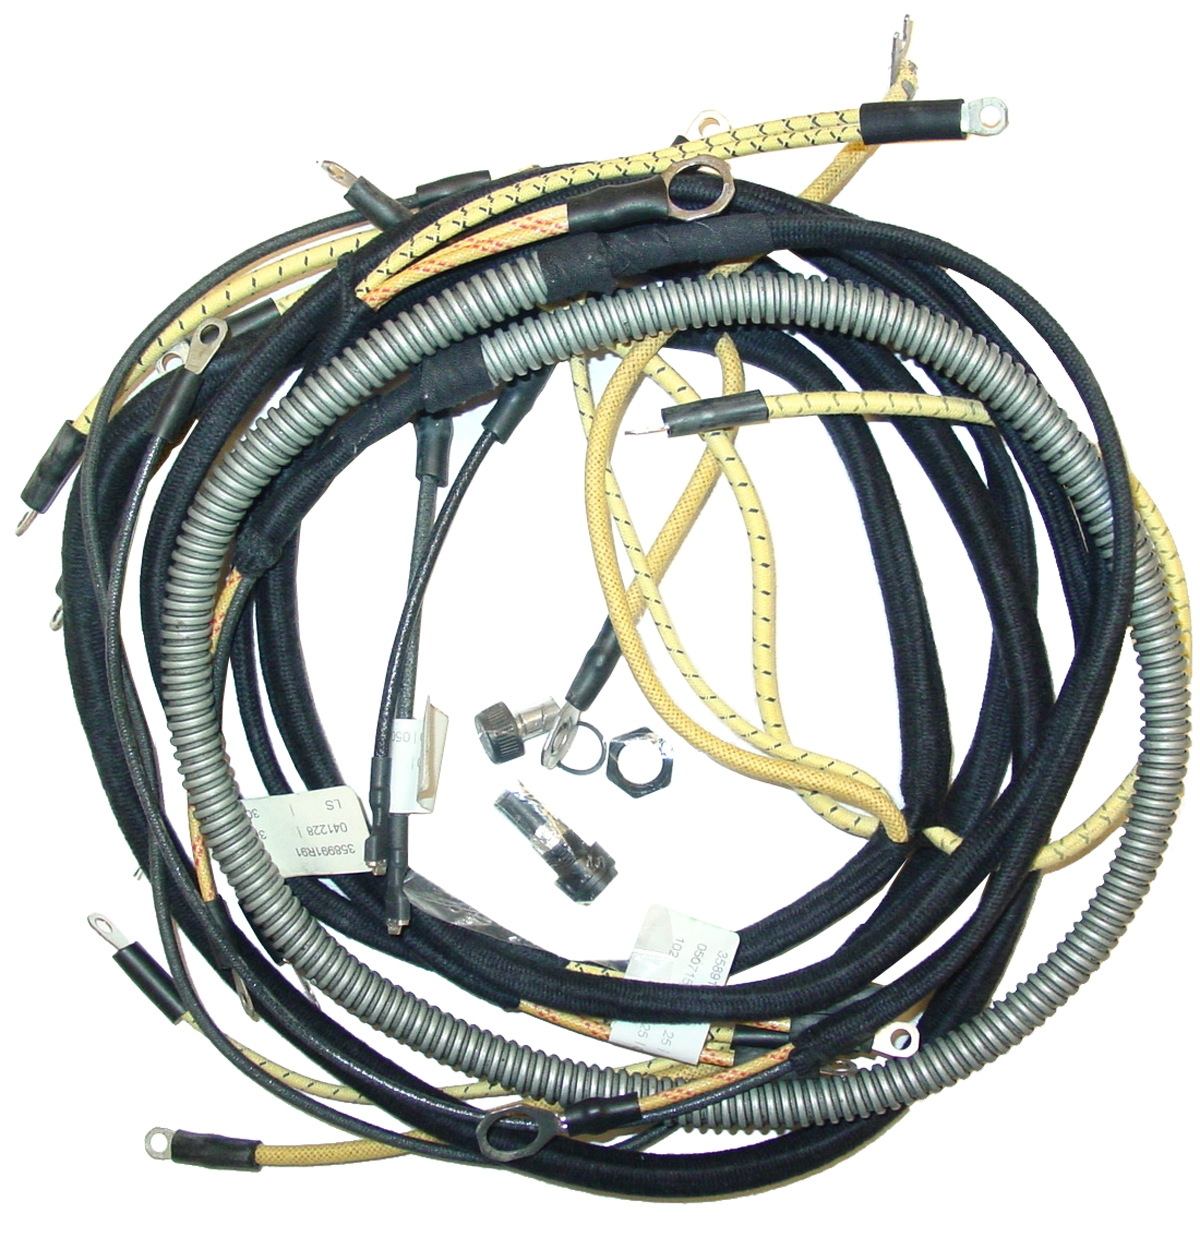 IHS488 wiring harness case ih parts case ih tractor parts wiring harness parts at virtualis.co